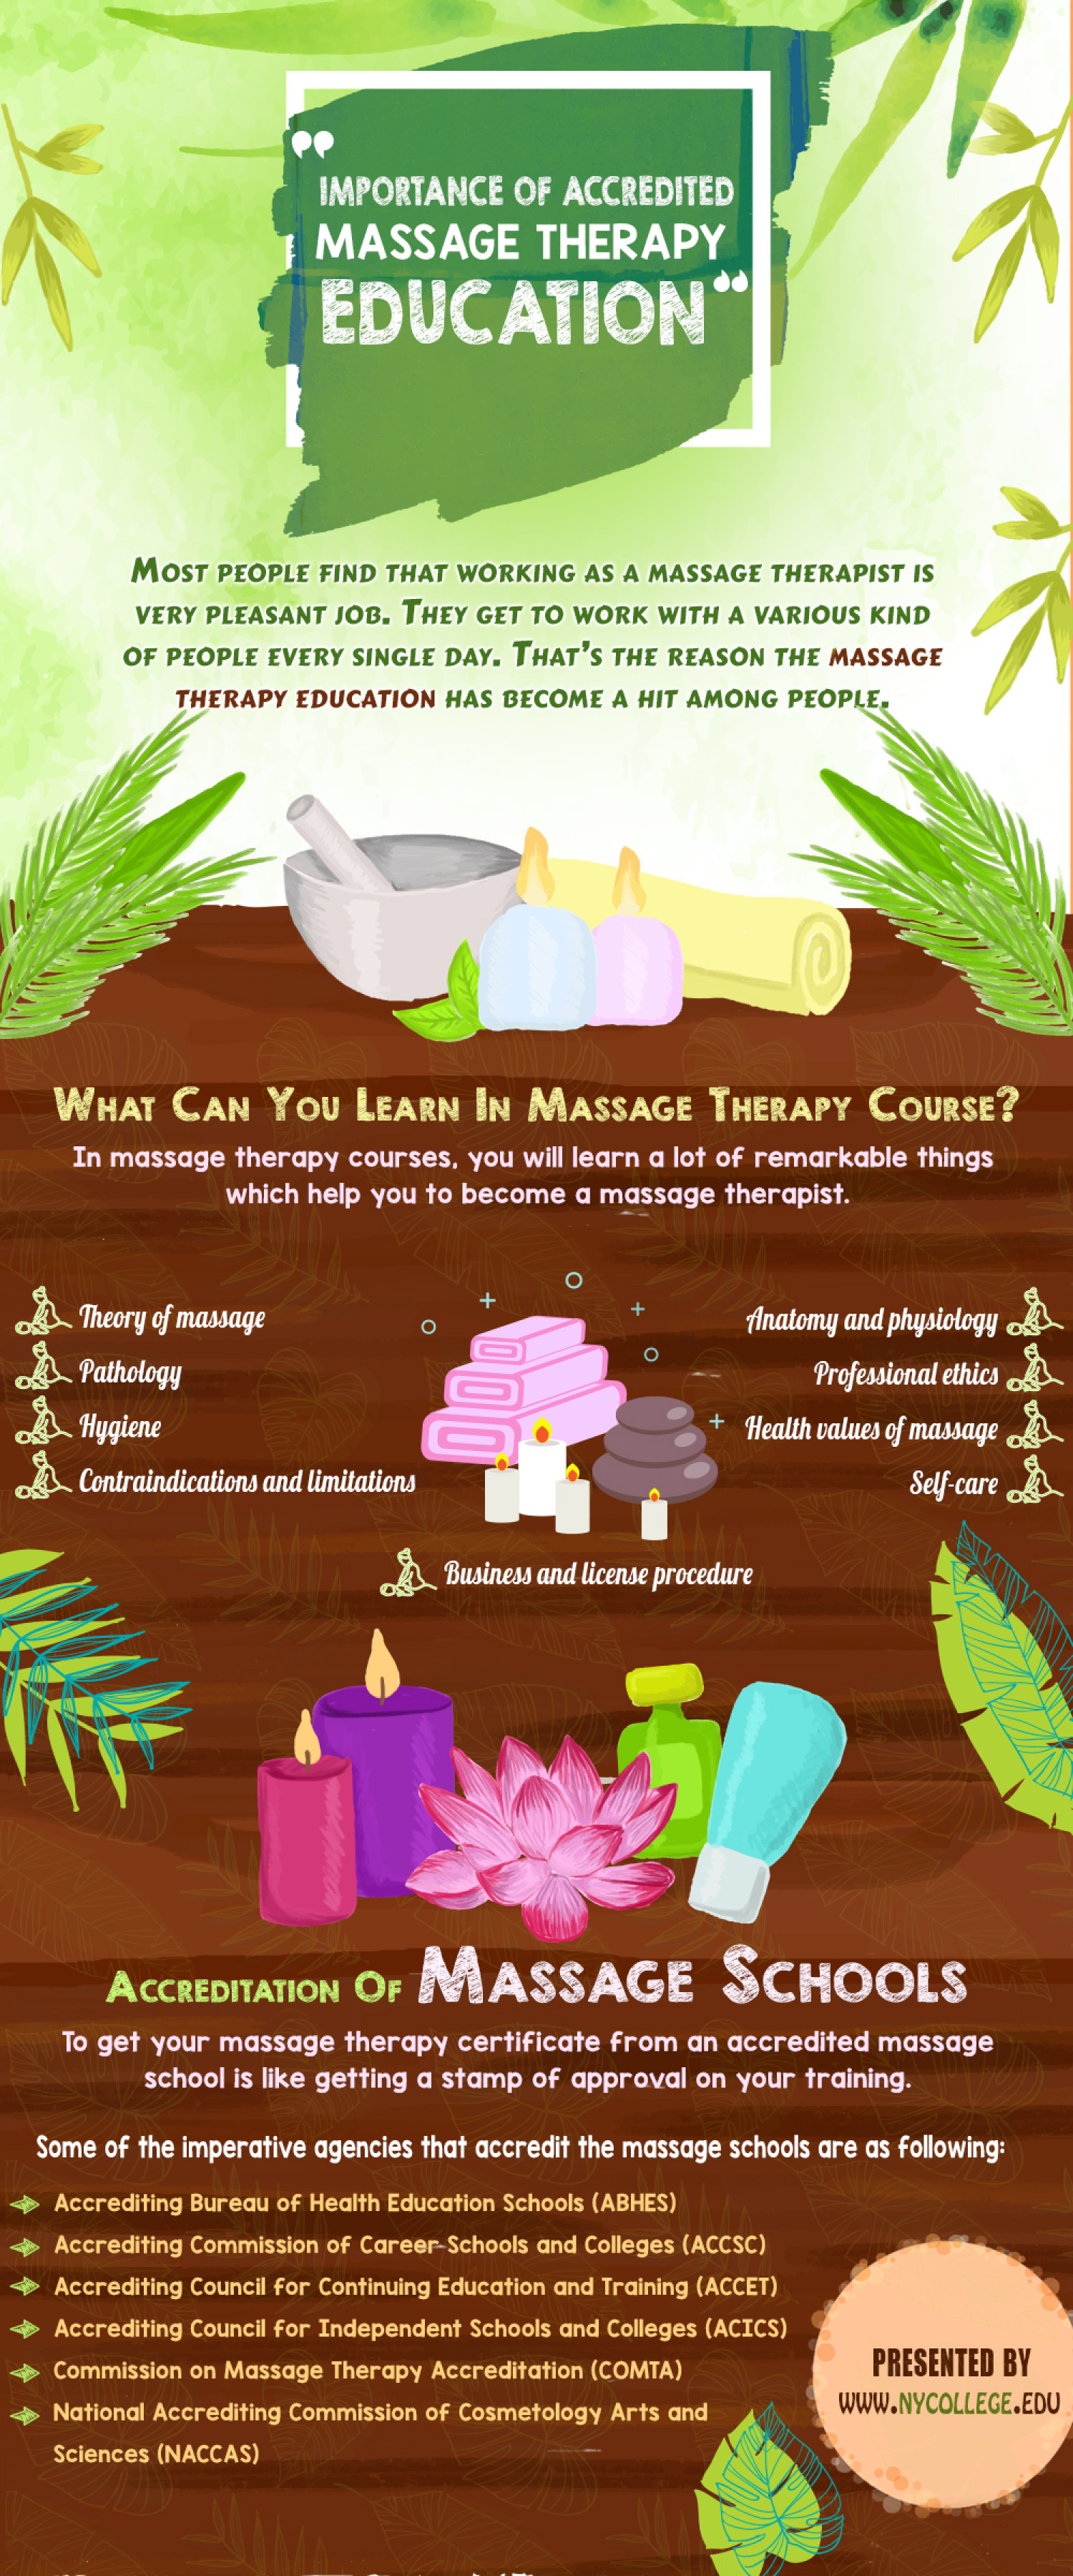 Importance Of Accredited Massage Therapy Education Infographic